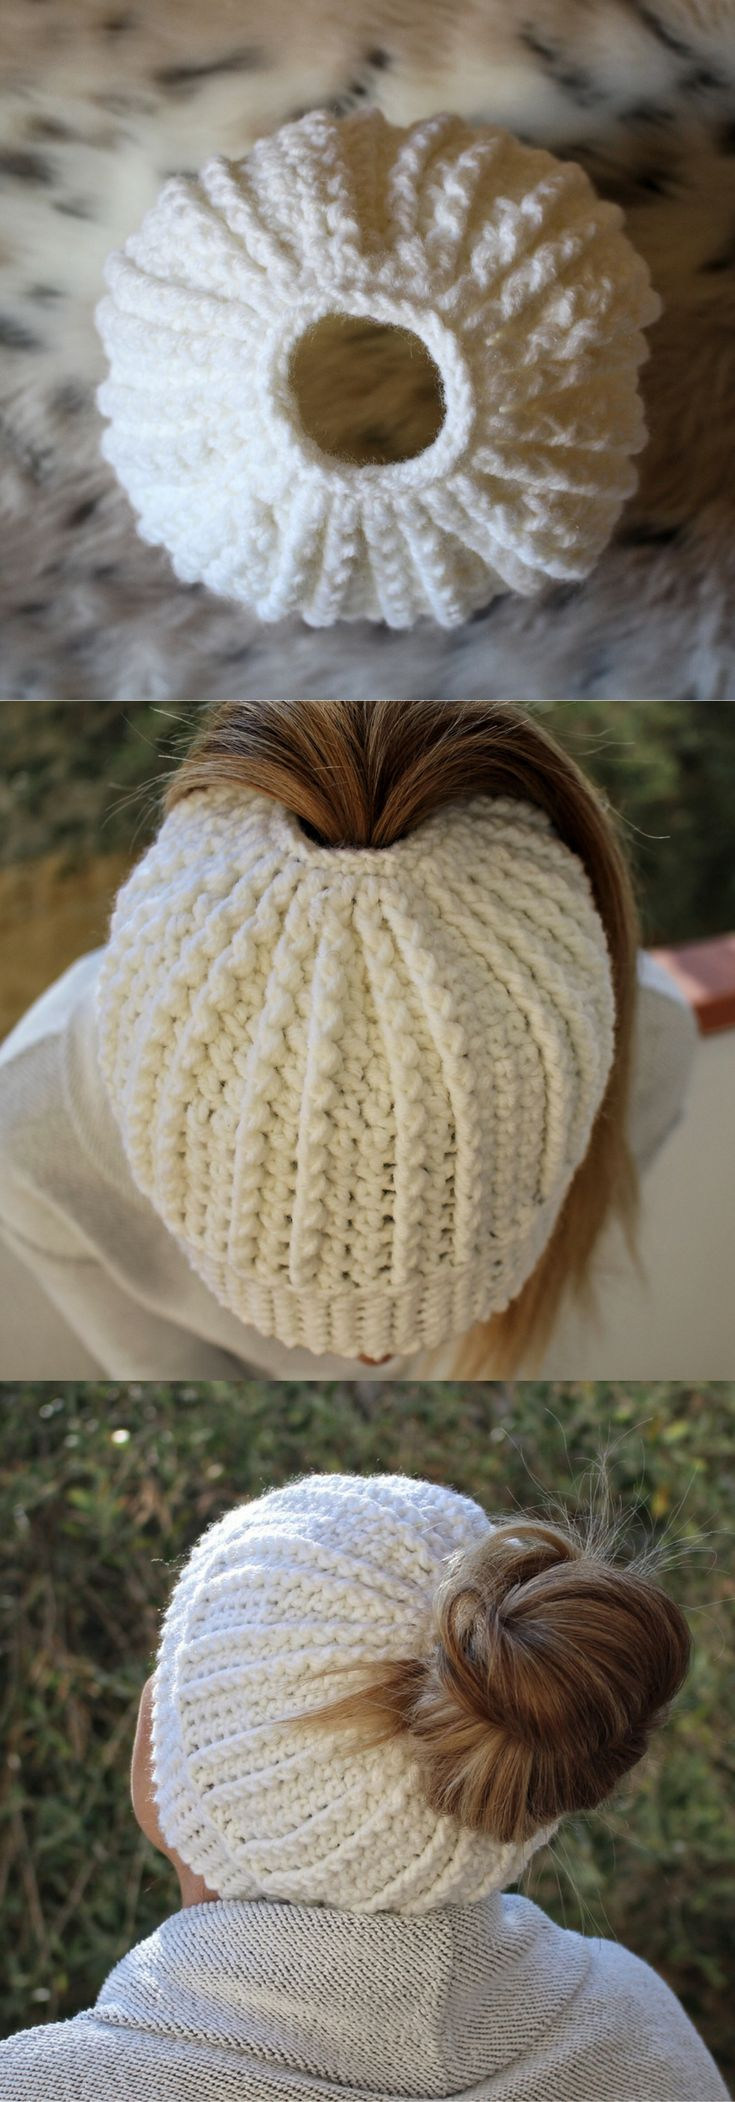 Messy Bun Hat, Crochet Pony Tail Beanie, Cappelli Donna, Cappello Lana, Running Beanie, Best Friend Hat, Bun Hat Knitted, Regali per Lei